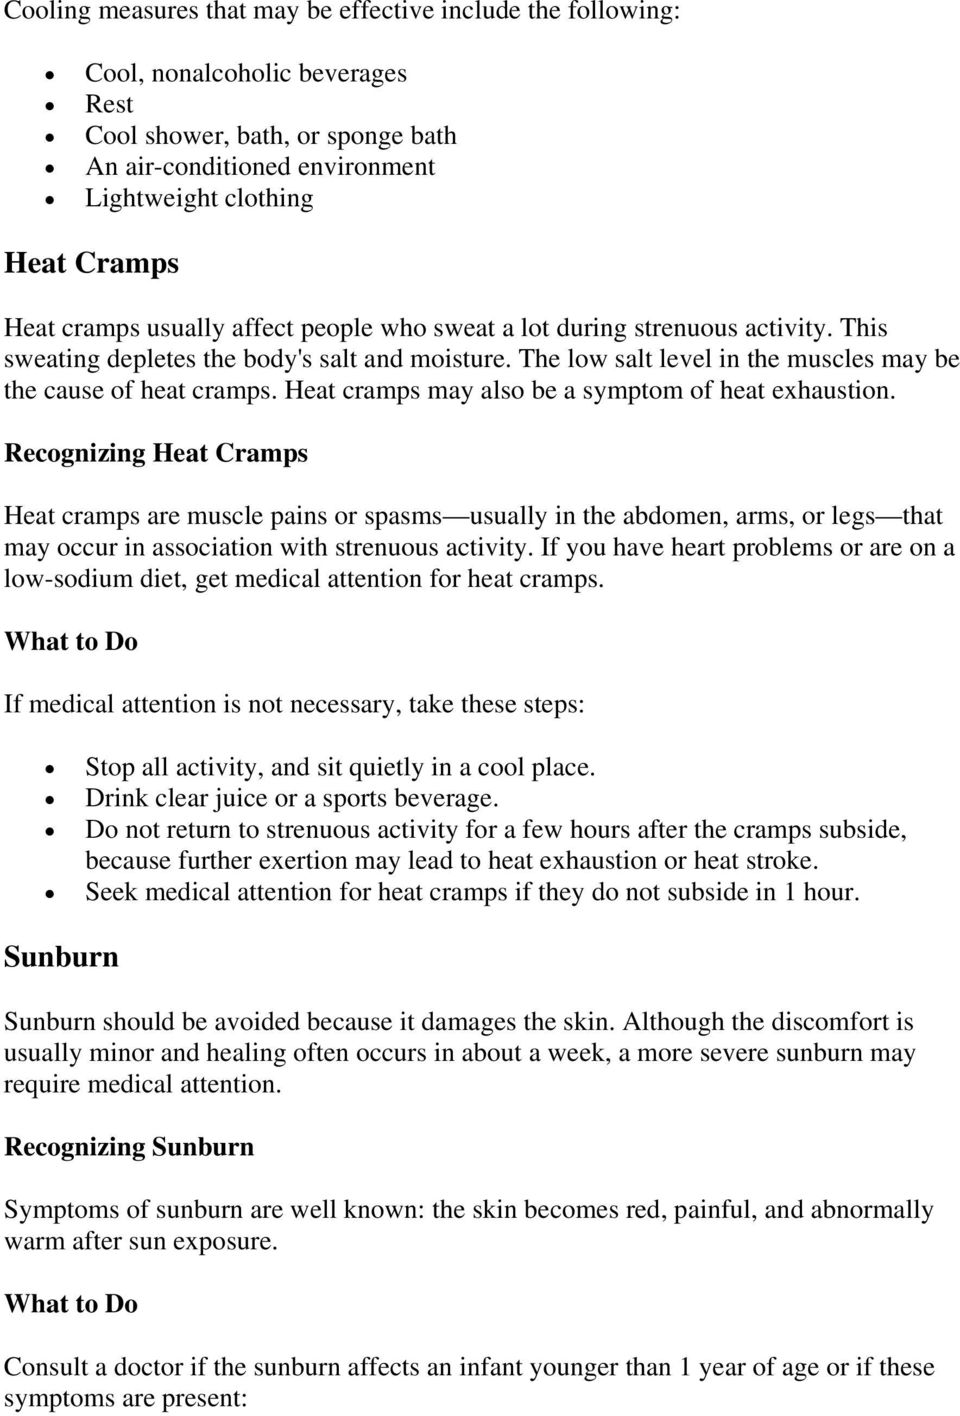 Heat cramps may also be a symptom of heat exhaustion.